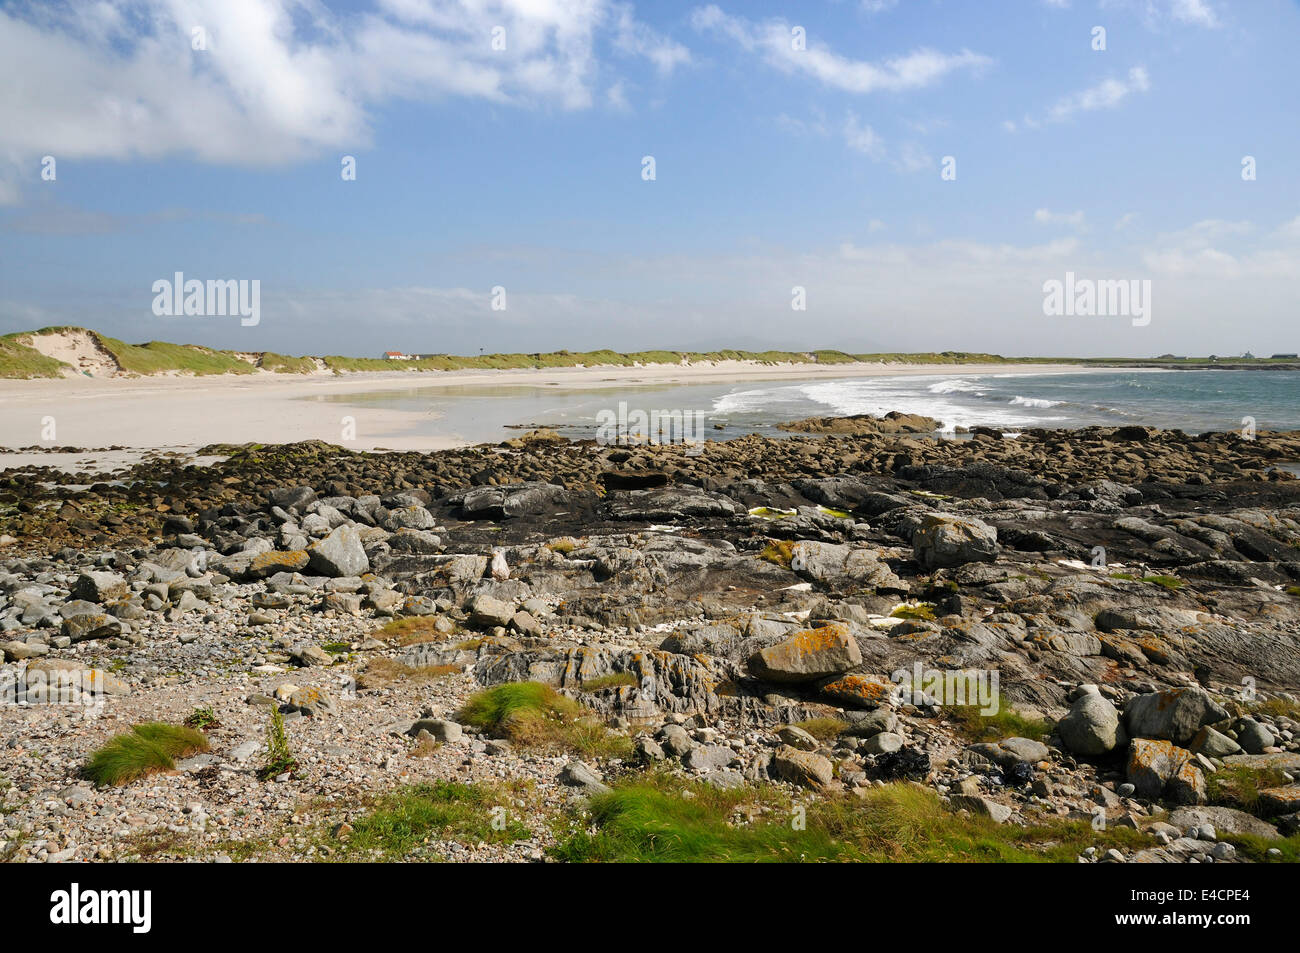 White Shell Sand Beach & Rocky shore of Culla Bay, Benbecula, Outer Hebrides - Stock Image